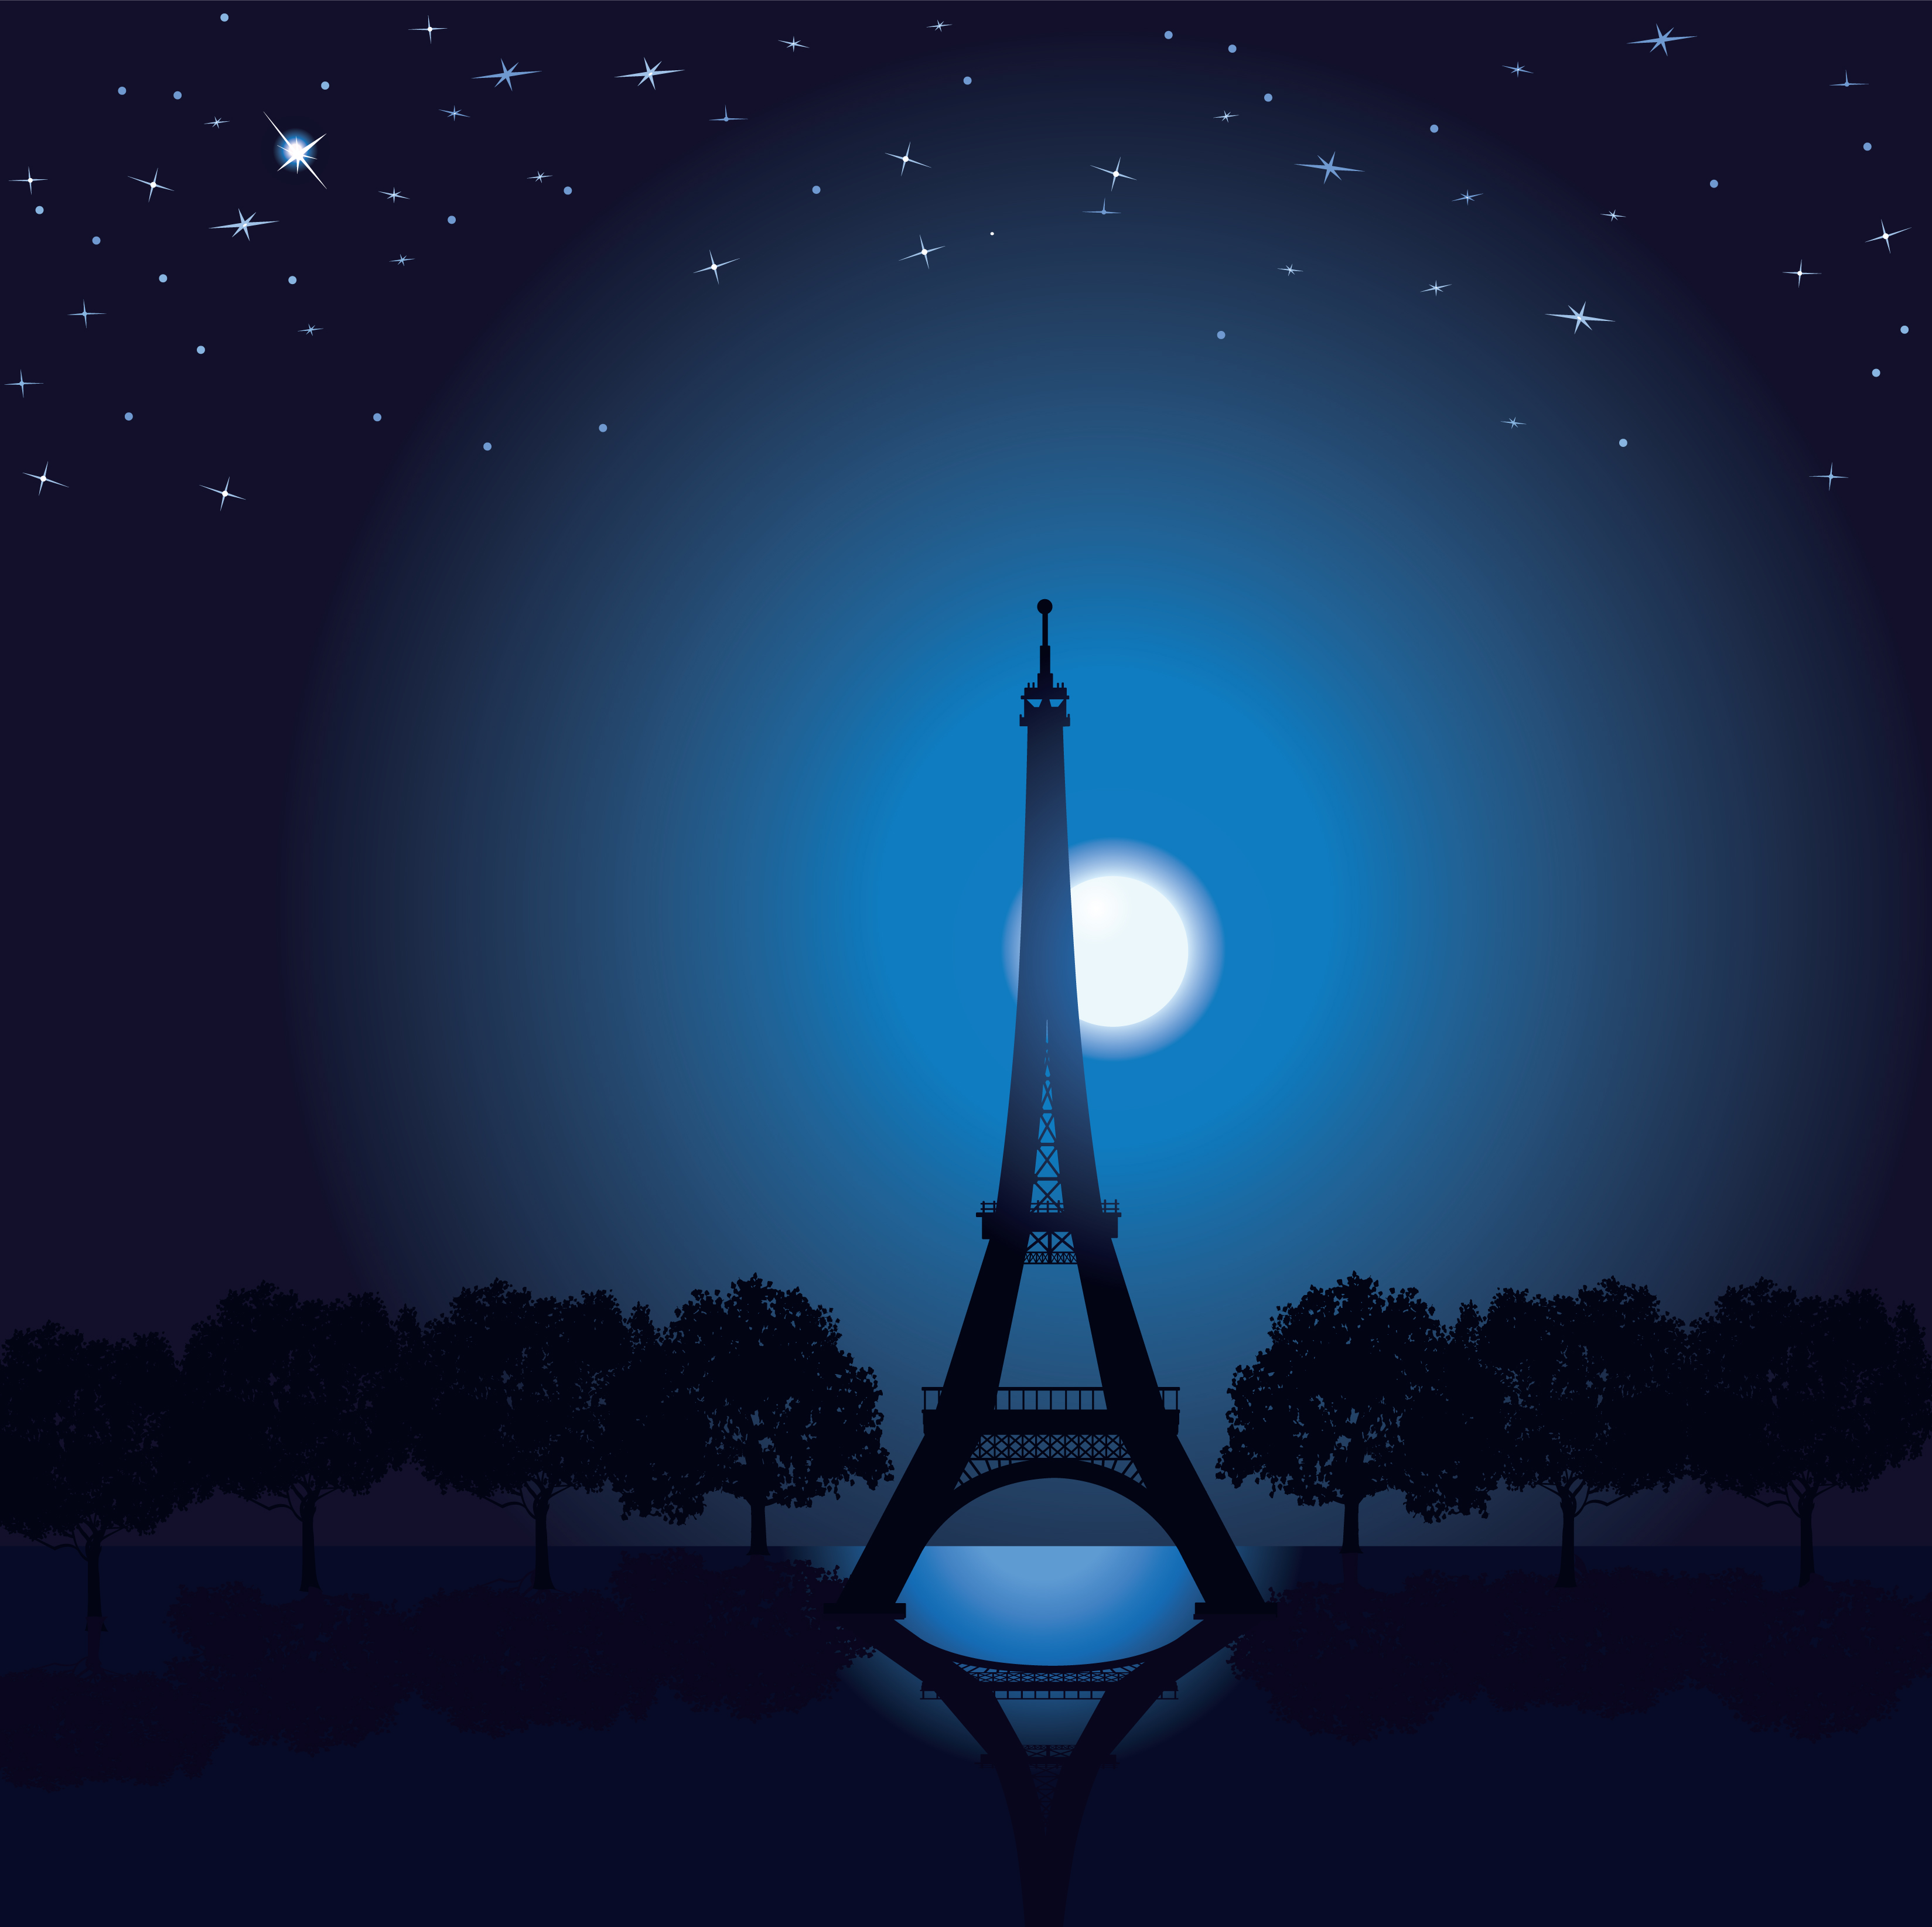 Our thoughts are with Paris tonight